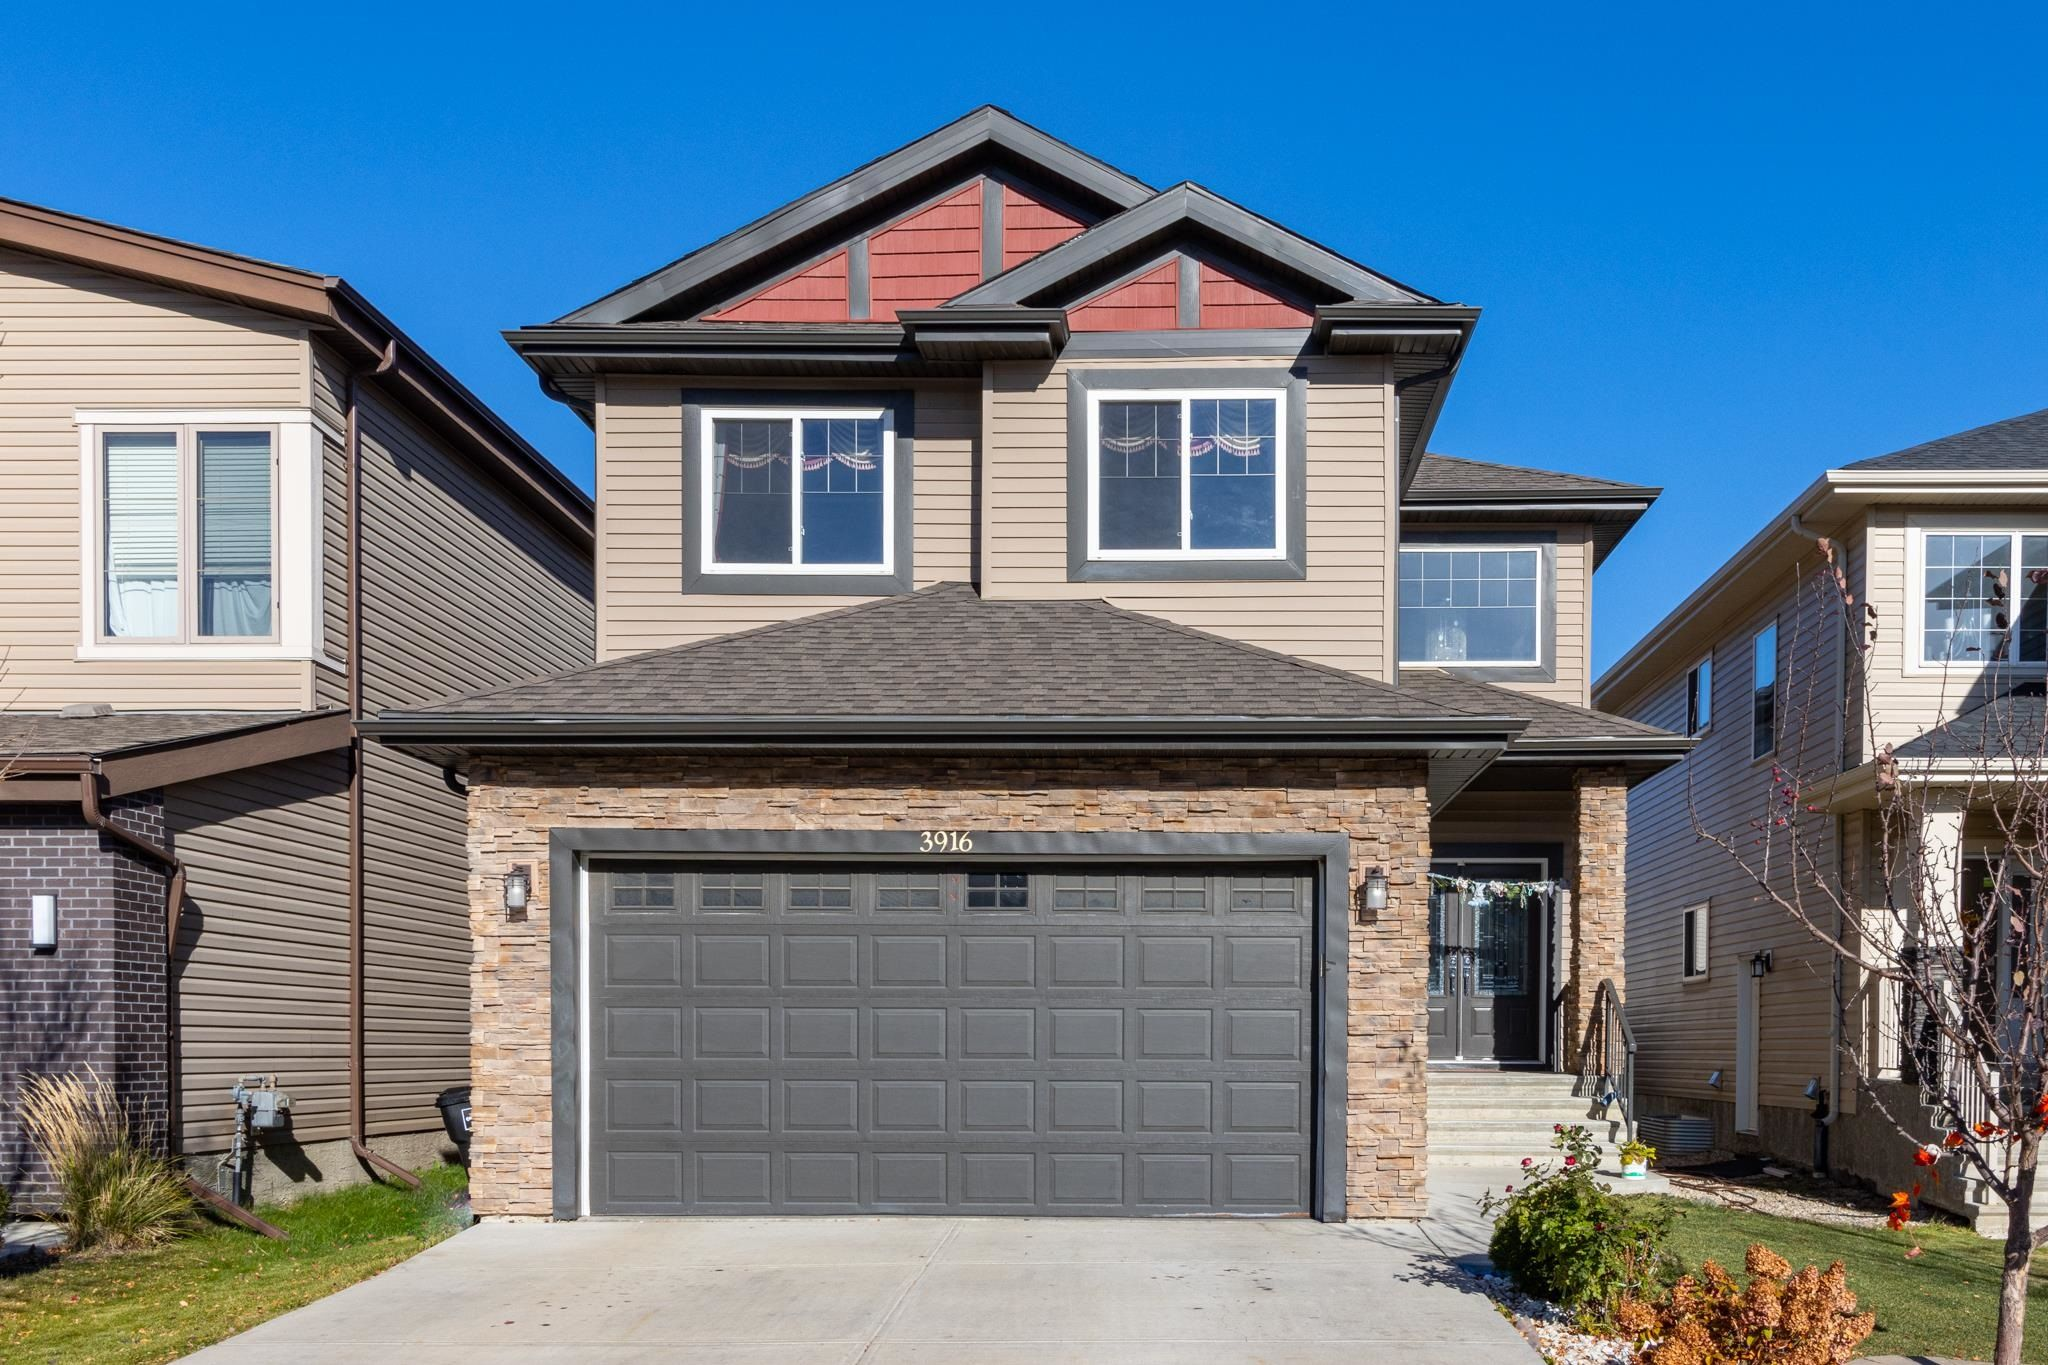 Main Photo: 3916 CLAXTON Loop in Edmonton: Zone 55 House for sale : MLS®# E4265784